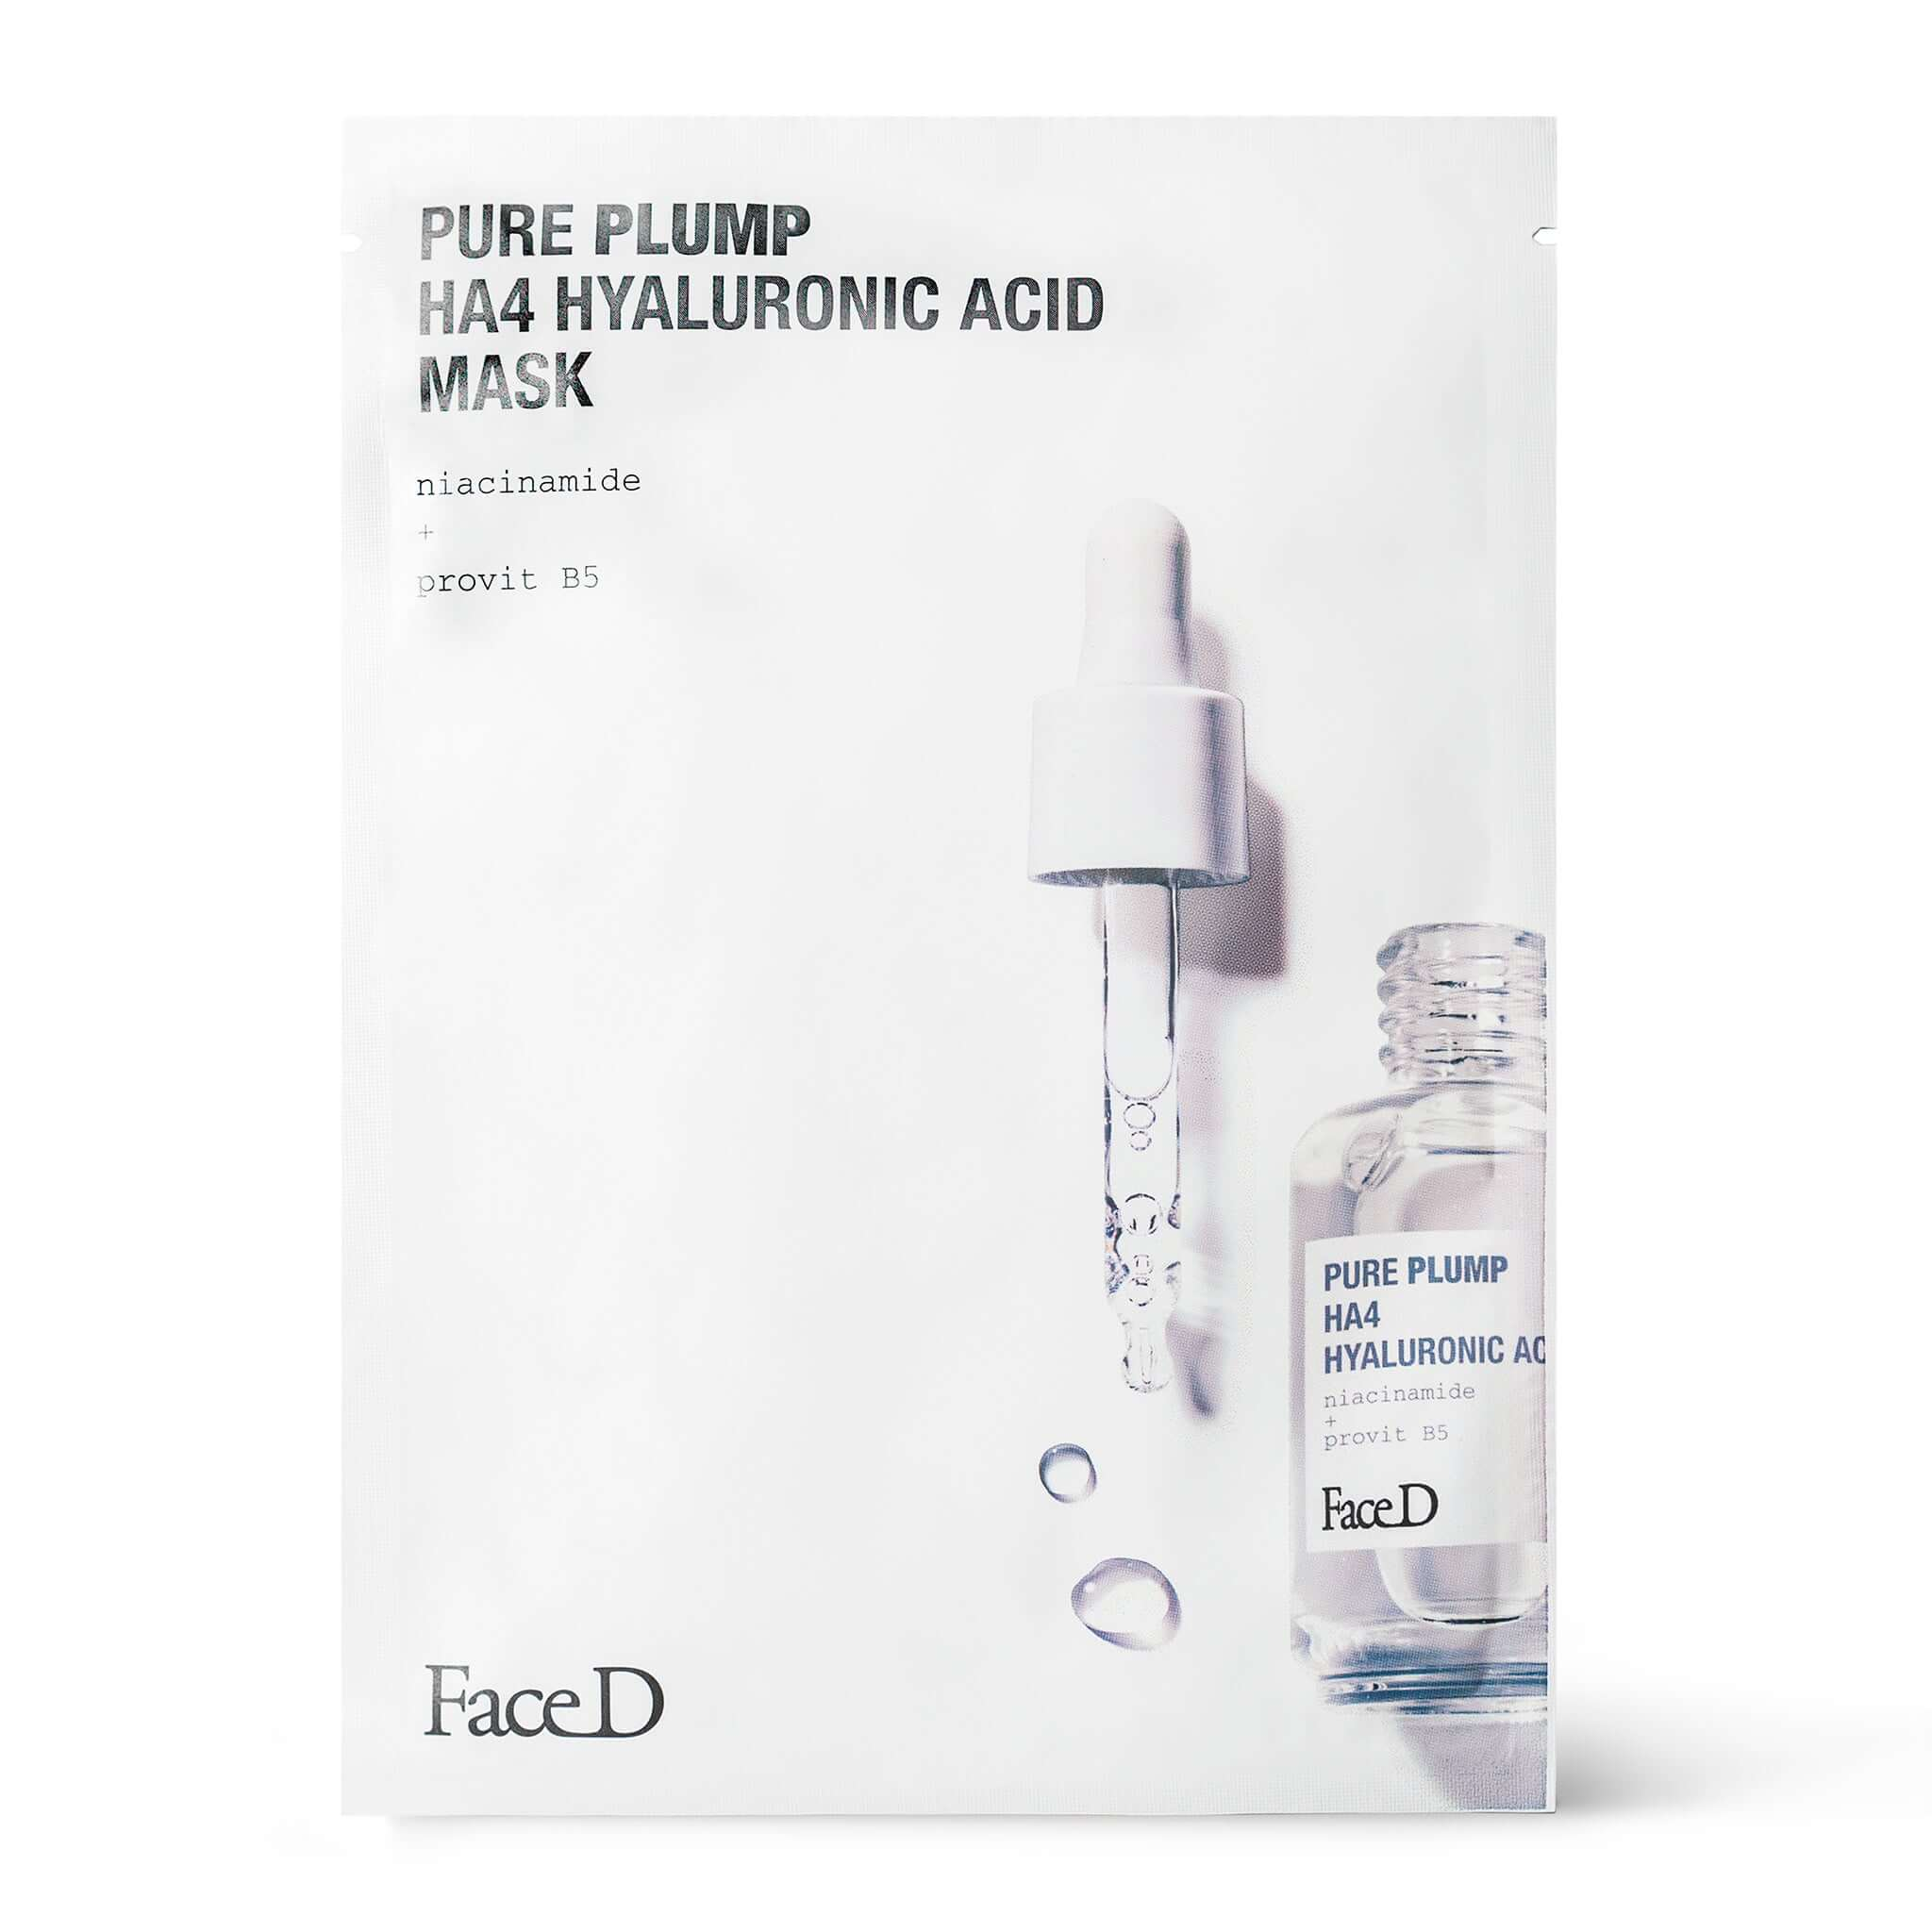 Pure-Plump-Ha4-Hyaluronic-Acid-Face-Mask-FaceD-Moisturisers || Maschera-Viso-acido-ialuronico-Pure-Plump-HA4-monodose-FaceD-idratazione